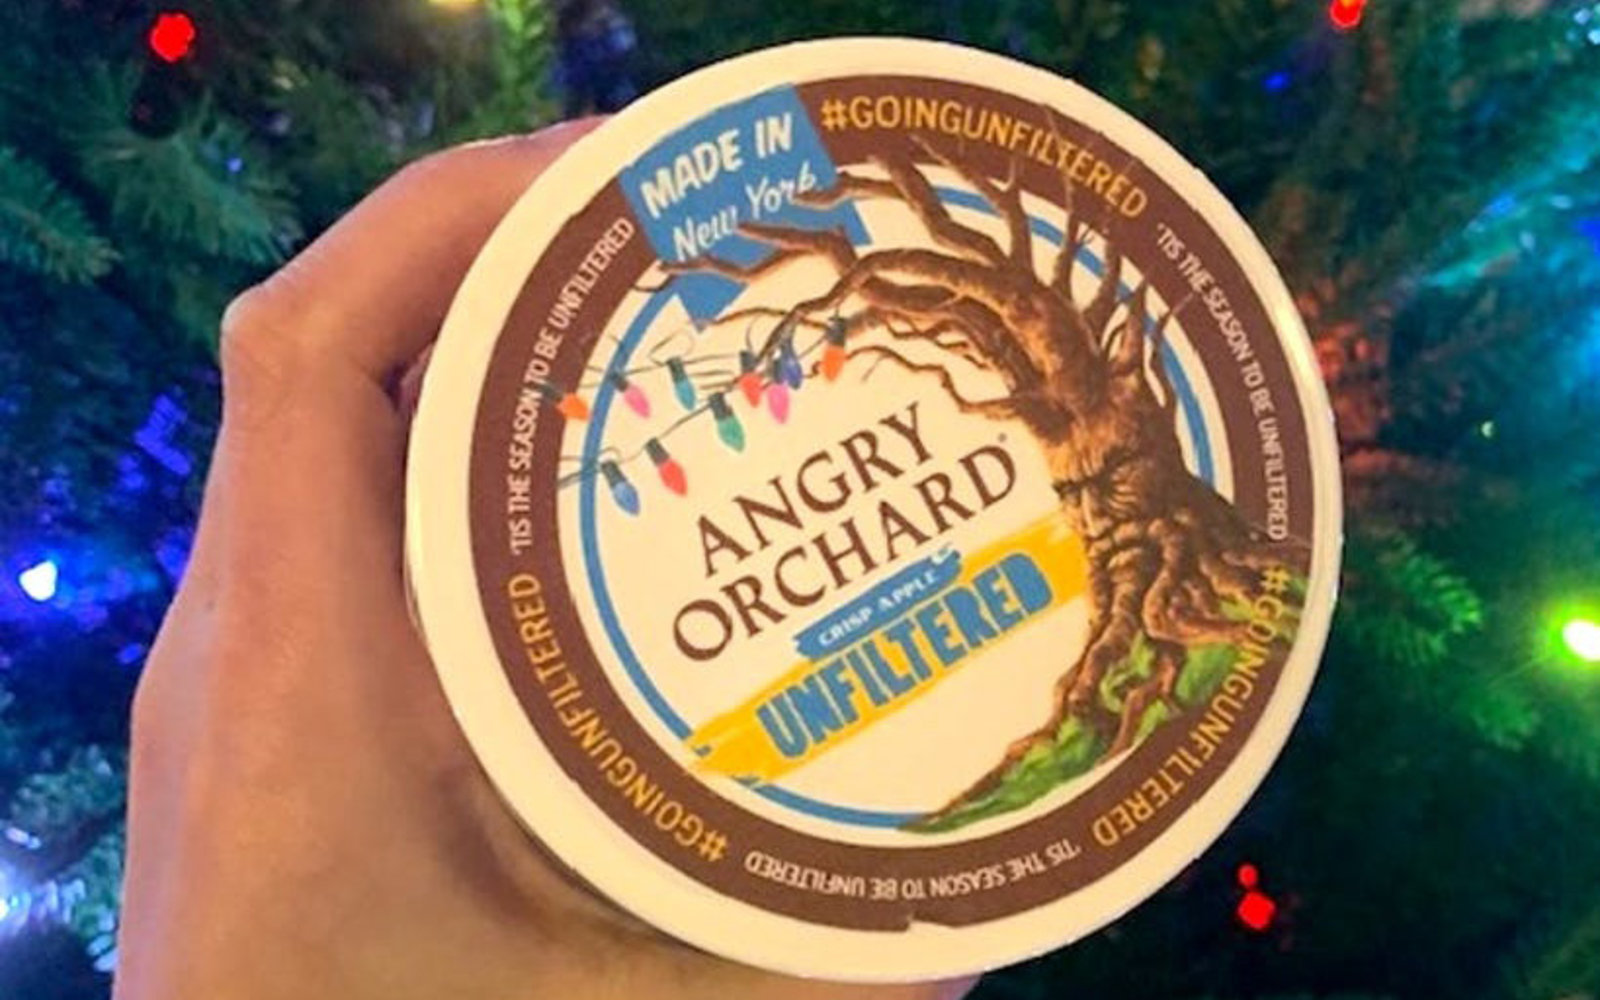 This Angry Orchard spiked ice cream is the holiday treat you didn't know you needed